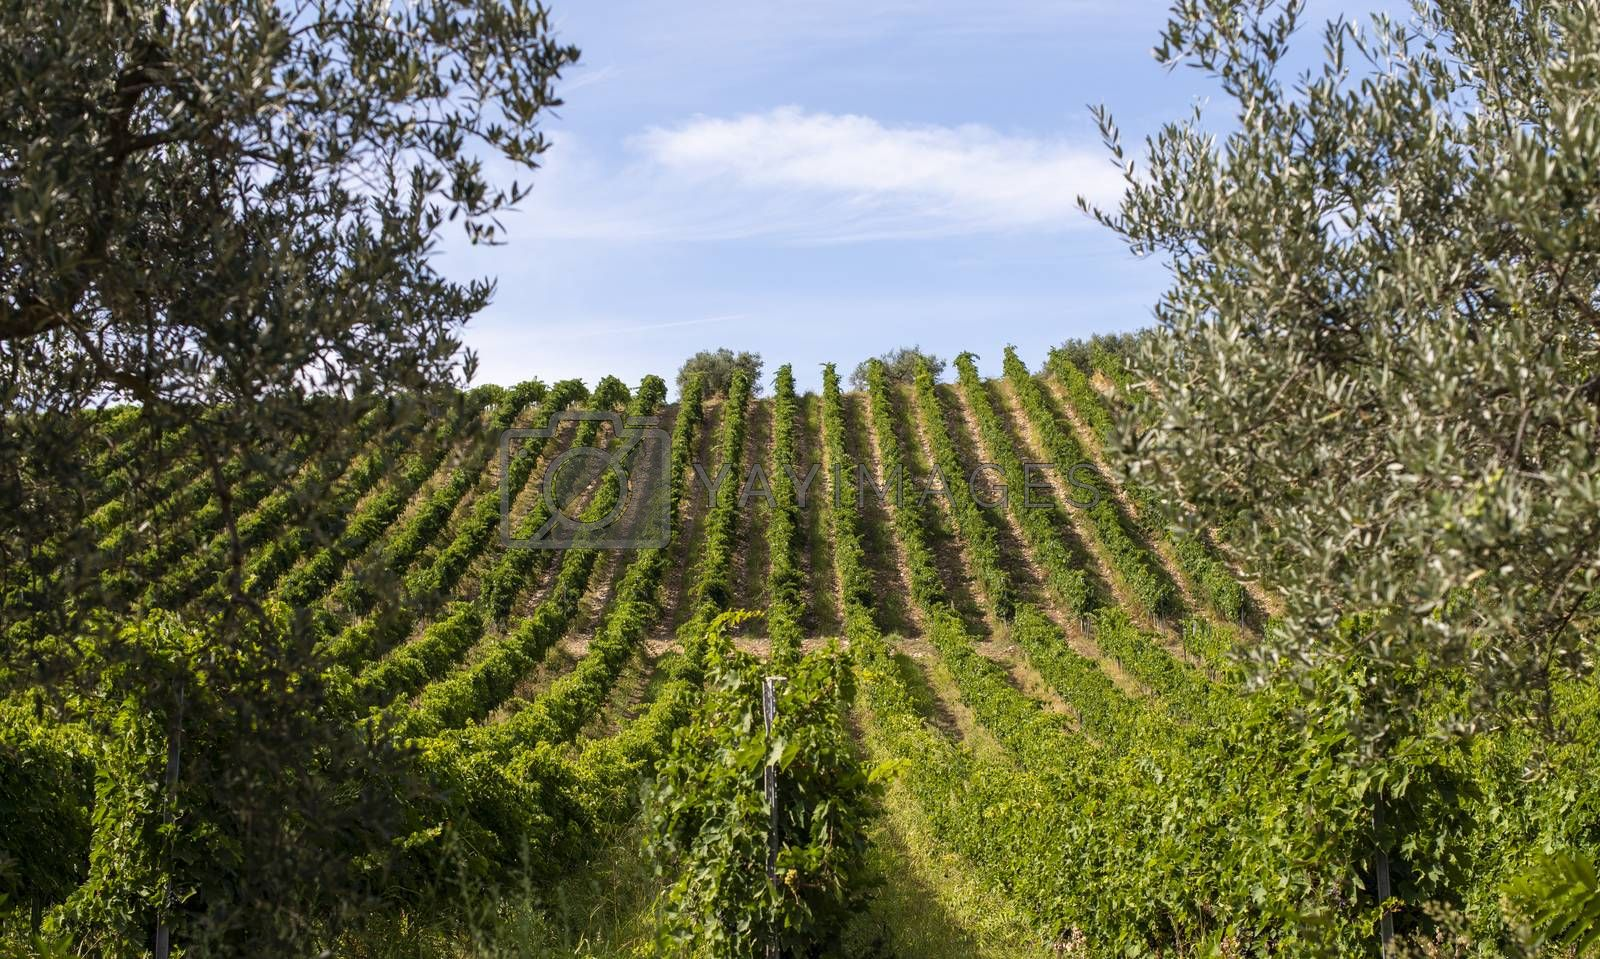 Vineyards with red grape for wine making. Big italian vineyard rows. Sunny day.